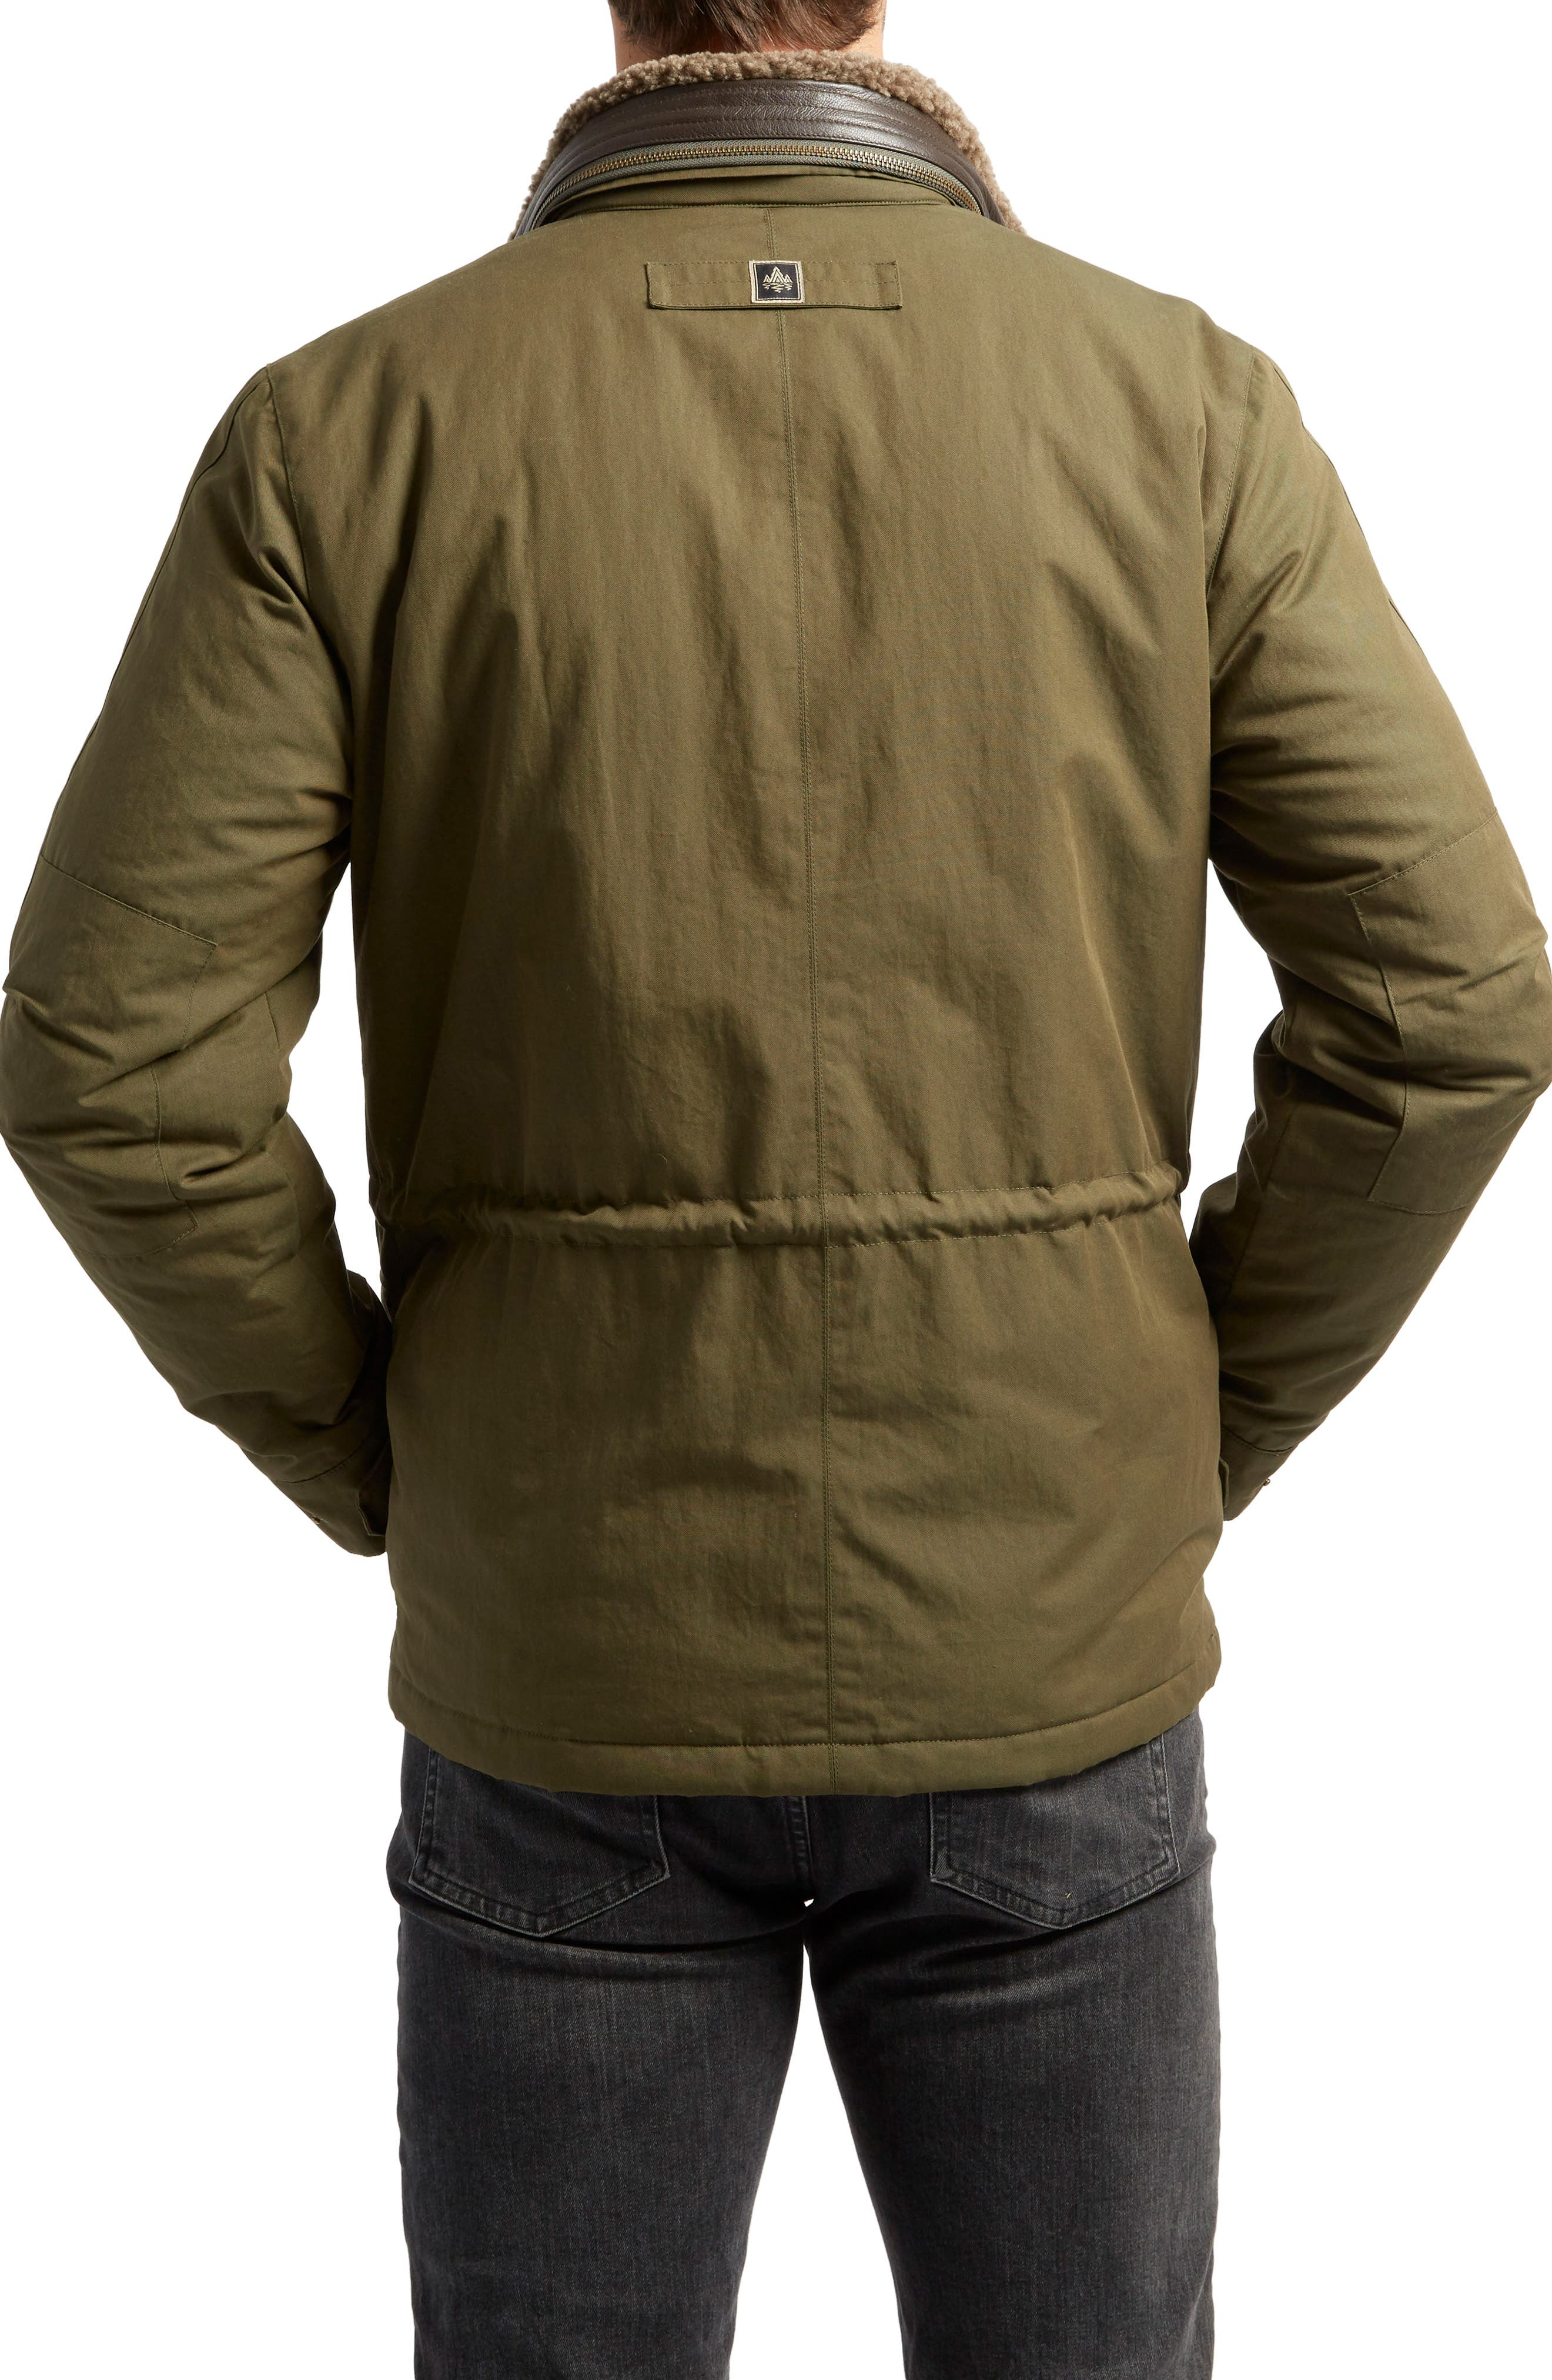 Flagler Heat System Field Jacket with Genuine Shearling Collar,                             Alternate thumbnail 2, color,                             319